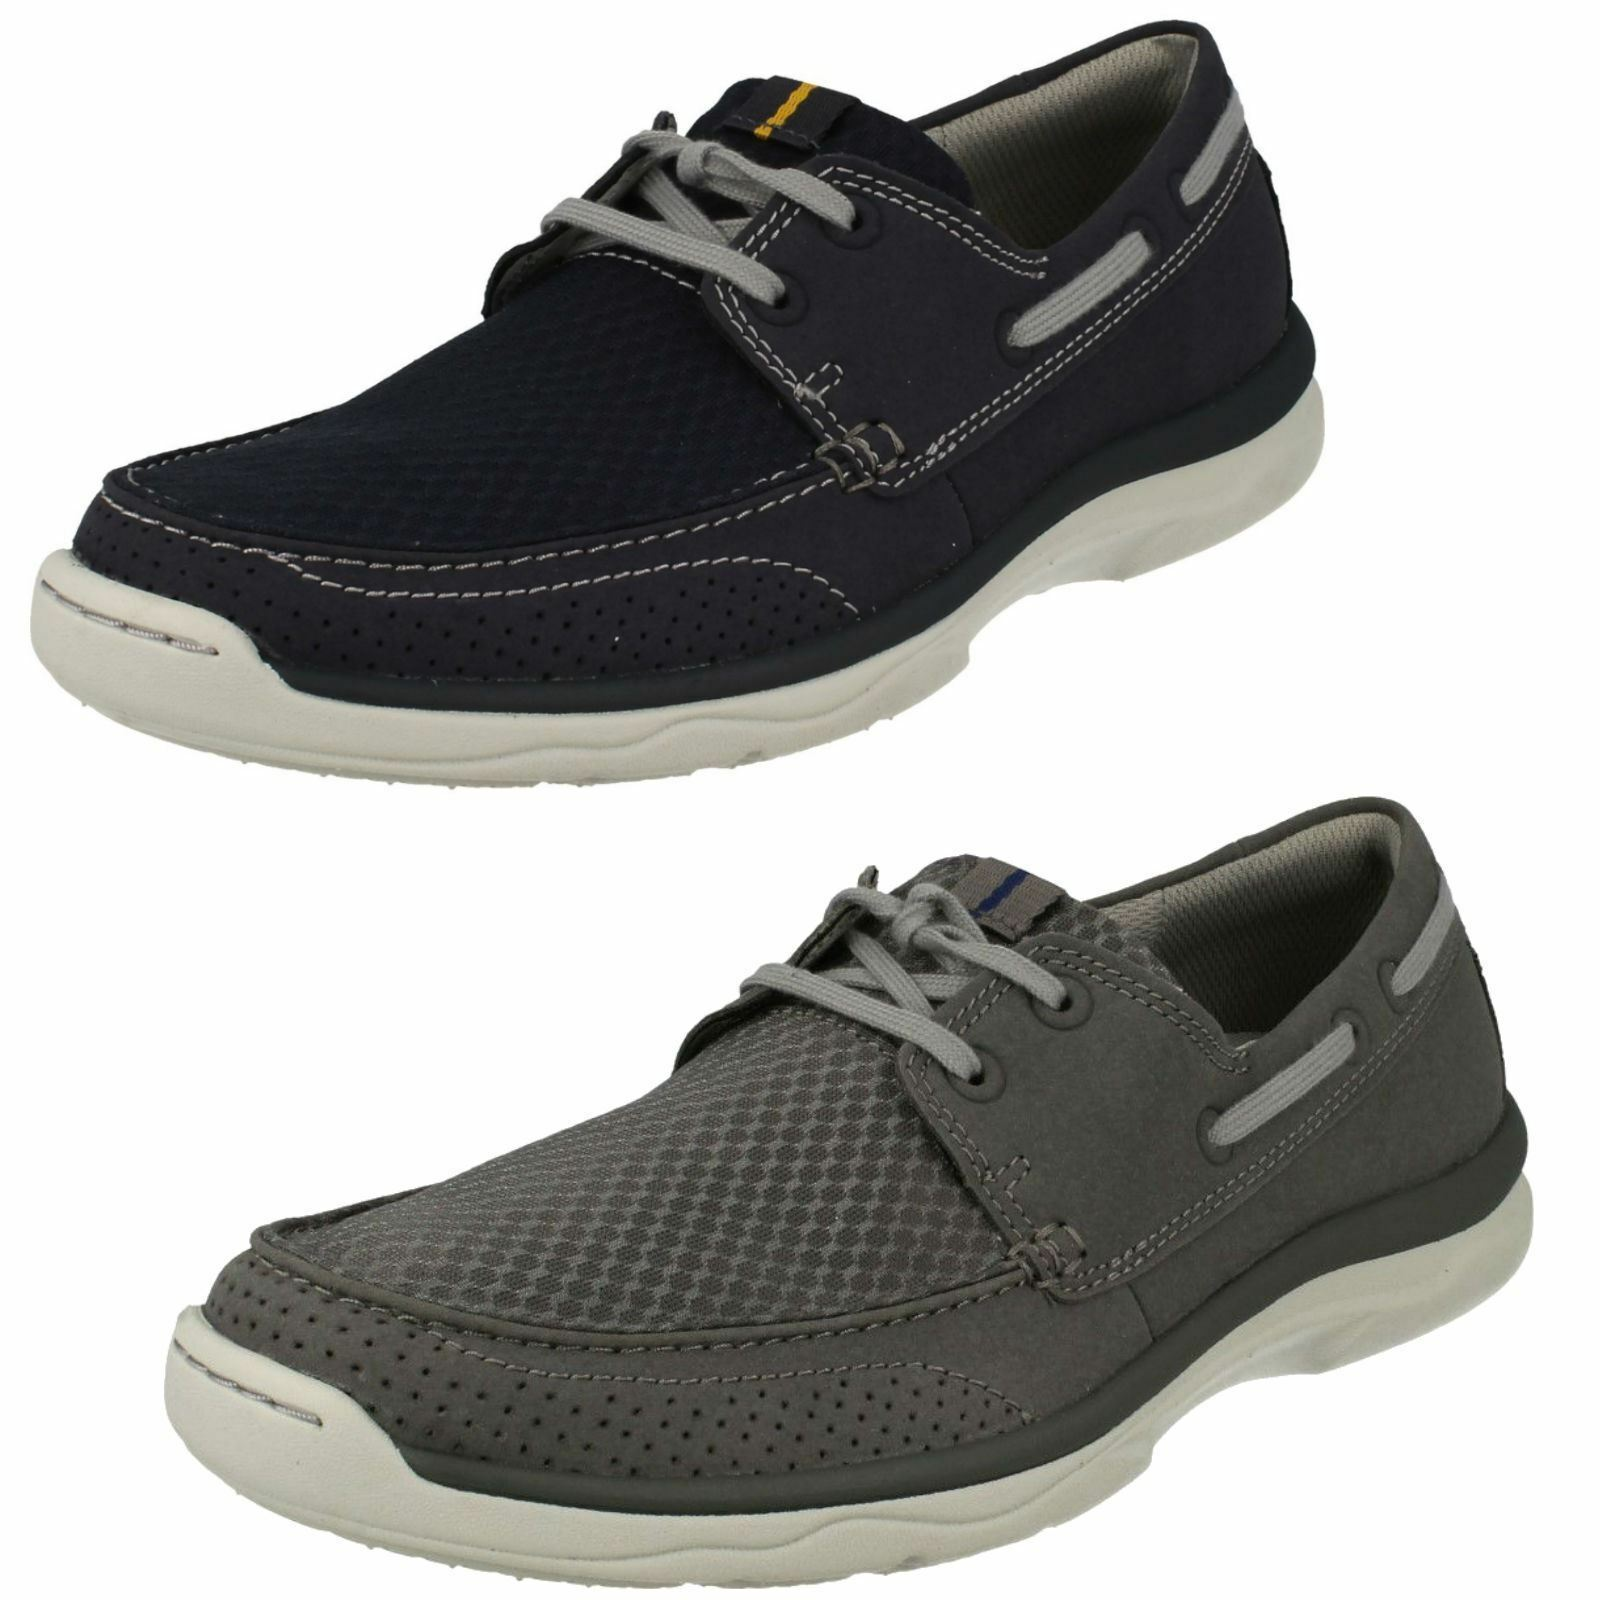 Mens Clarks Cloud Steppers Marus Edge Casual Lace Up Deck Shoes